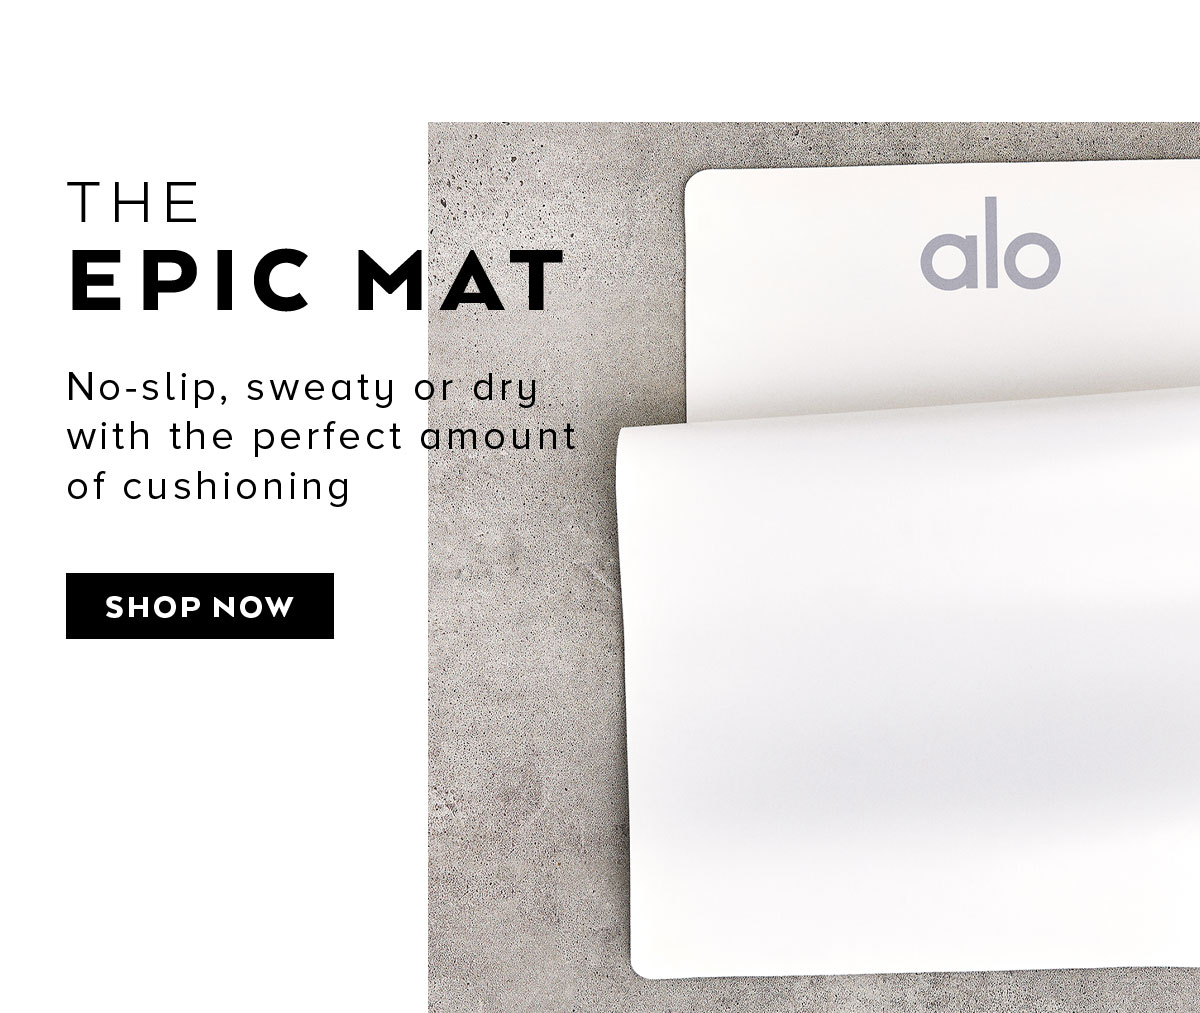 THE EPIC MAT. No-slip, sweaty or dry with the perfect amount of cushioning. SHOP NOW